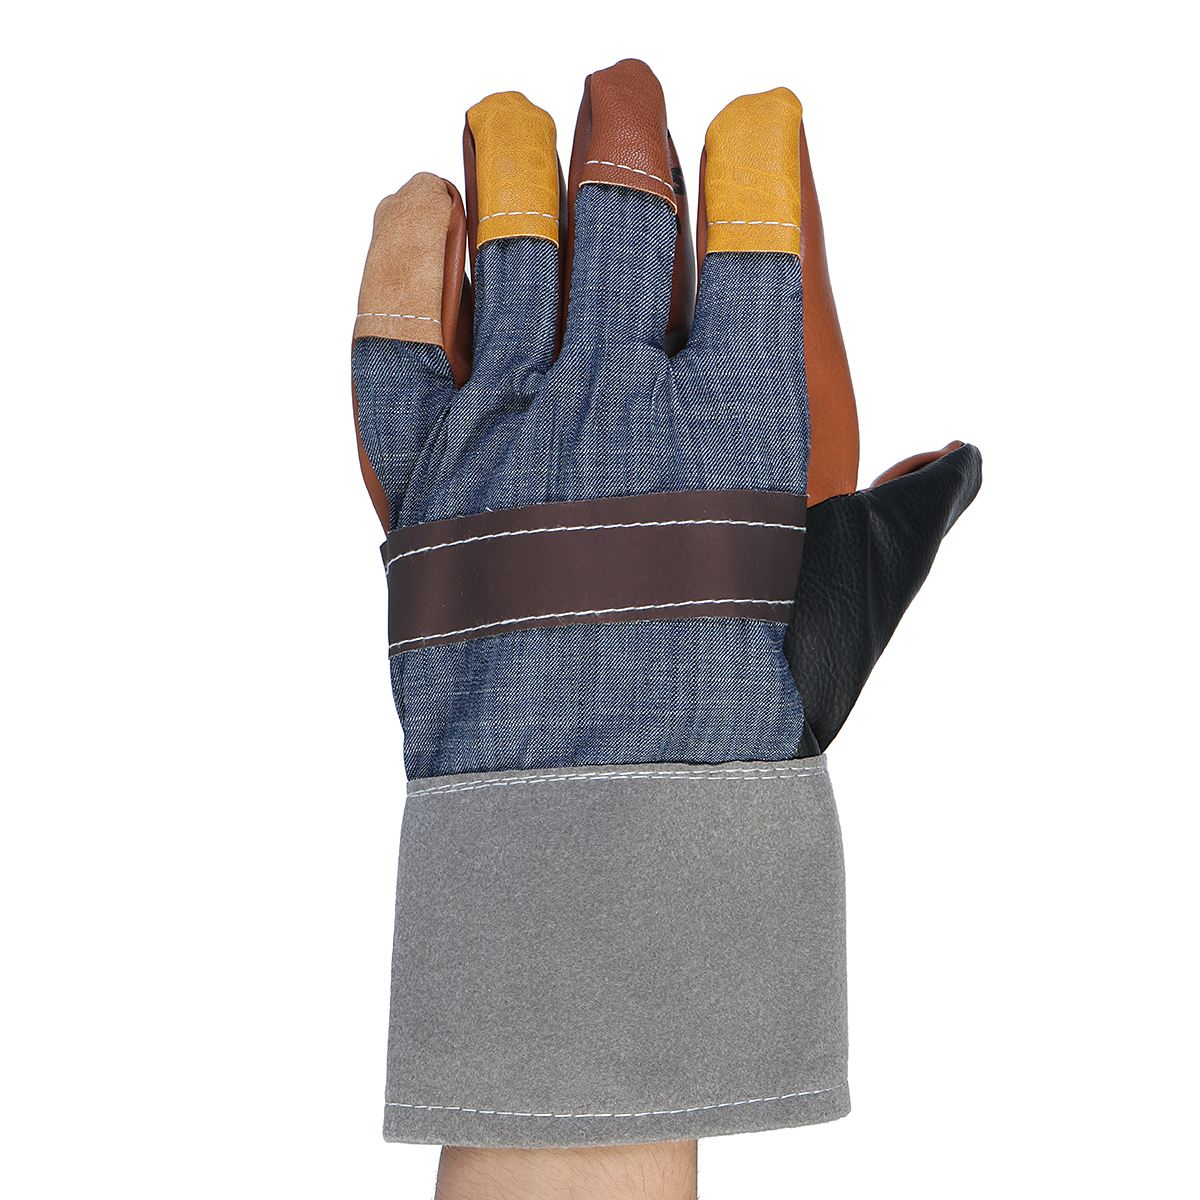 NEW Special 1 Pair Gloves Welder Gloves Leather Workplace Safety Hand Protection Cut Resistant strong 0 35mmpb medical x ray protective gloves ray workplace use gloves lead rubber gloves